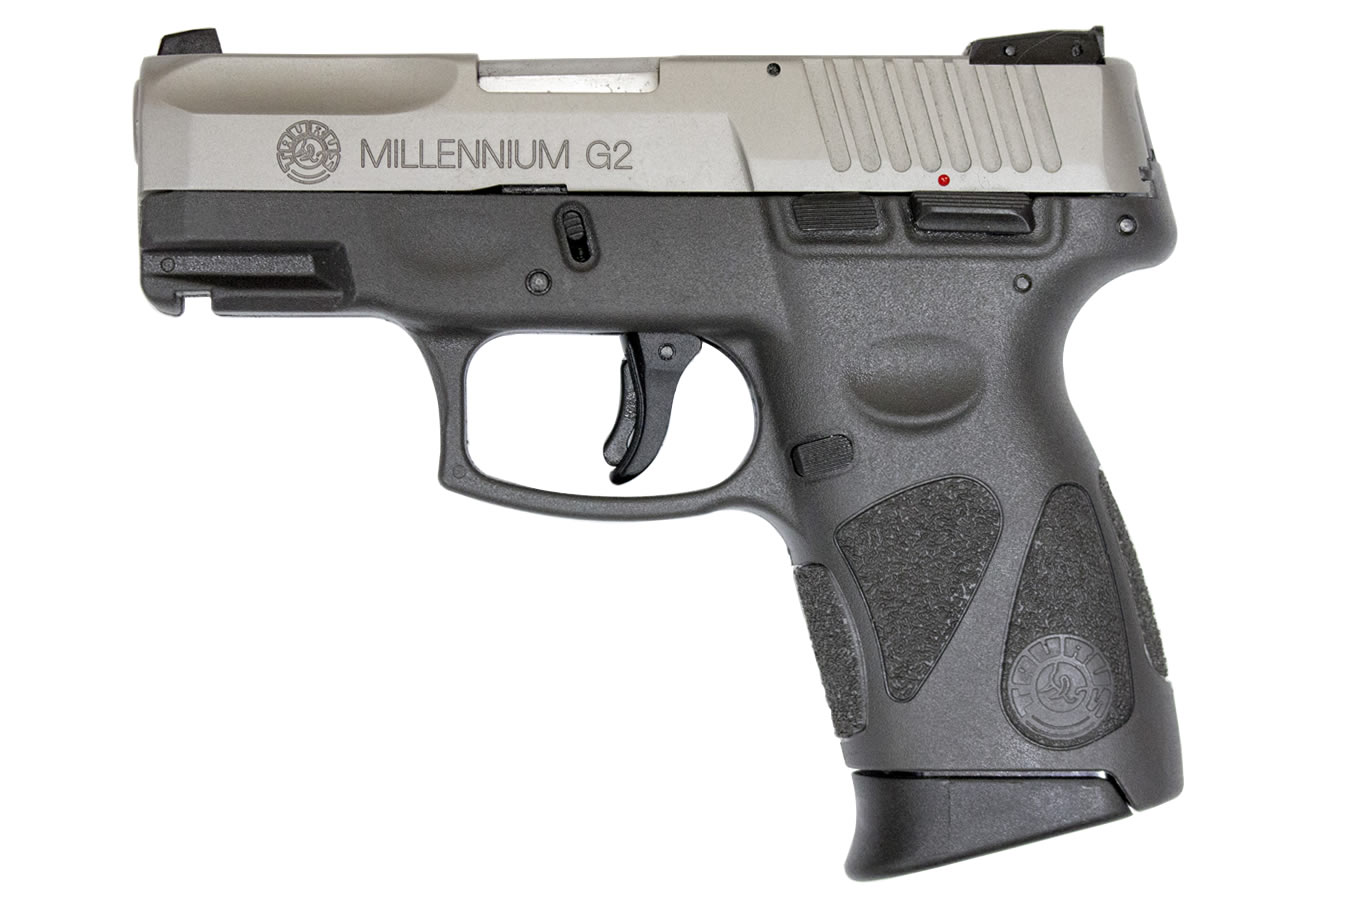 PT111 MILLENNIUM G2 9MM STAINLESS/GRAY